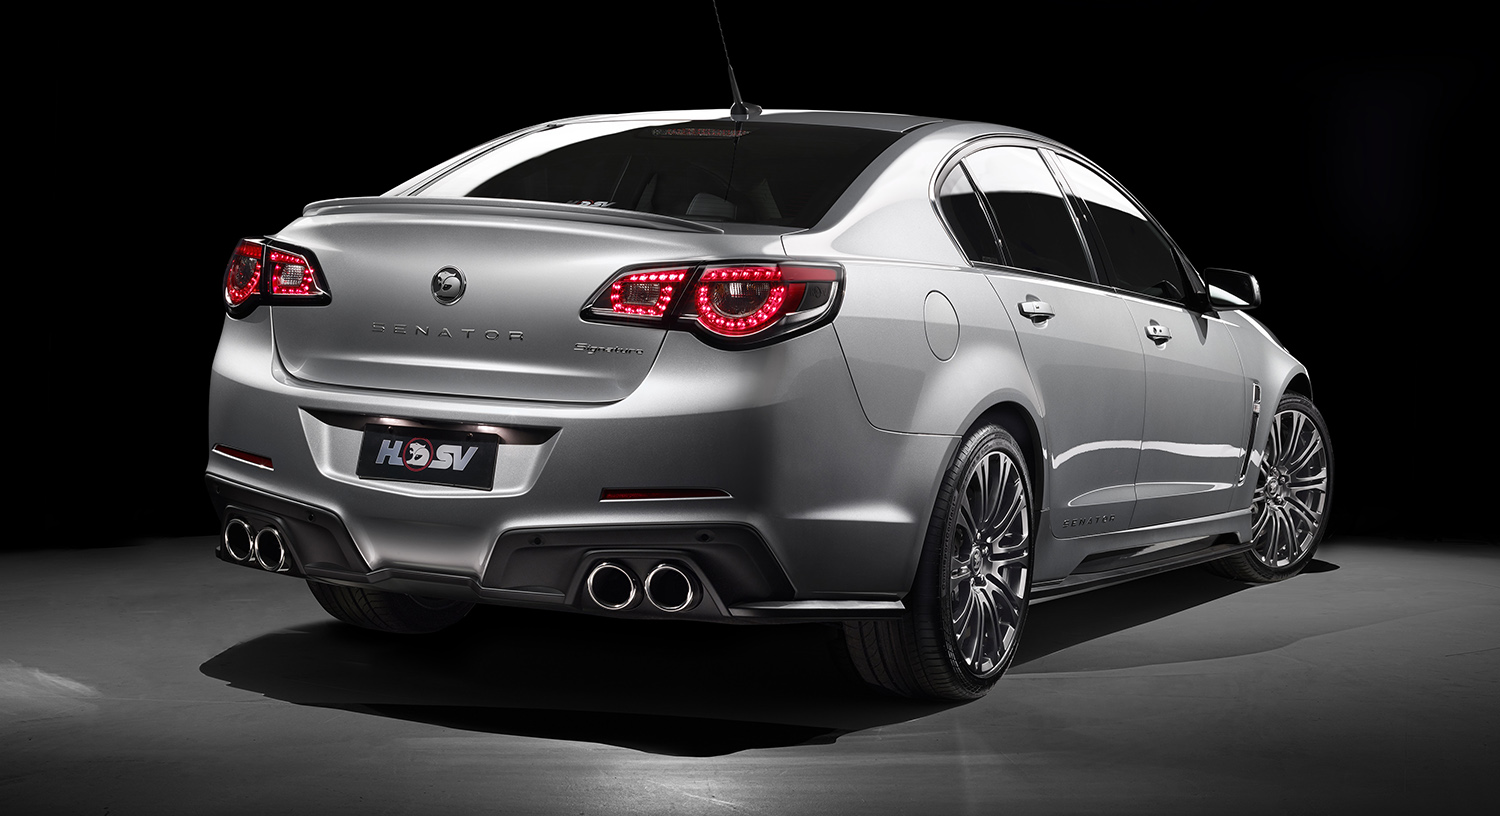 2016 Hsv Gen F2 Range Pricing And Specifications 400kw